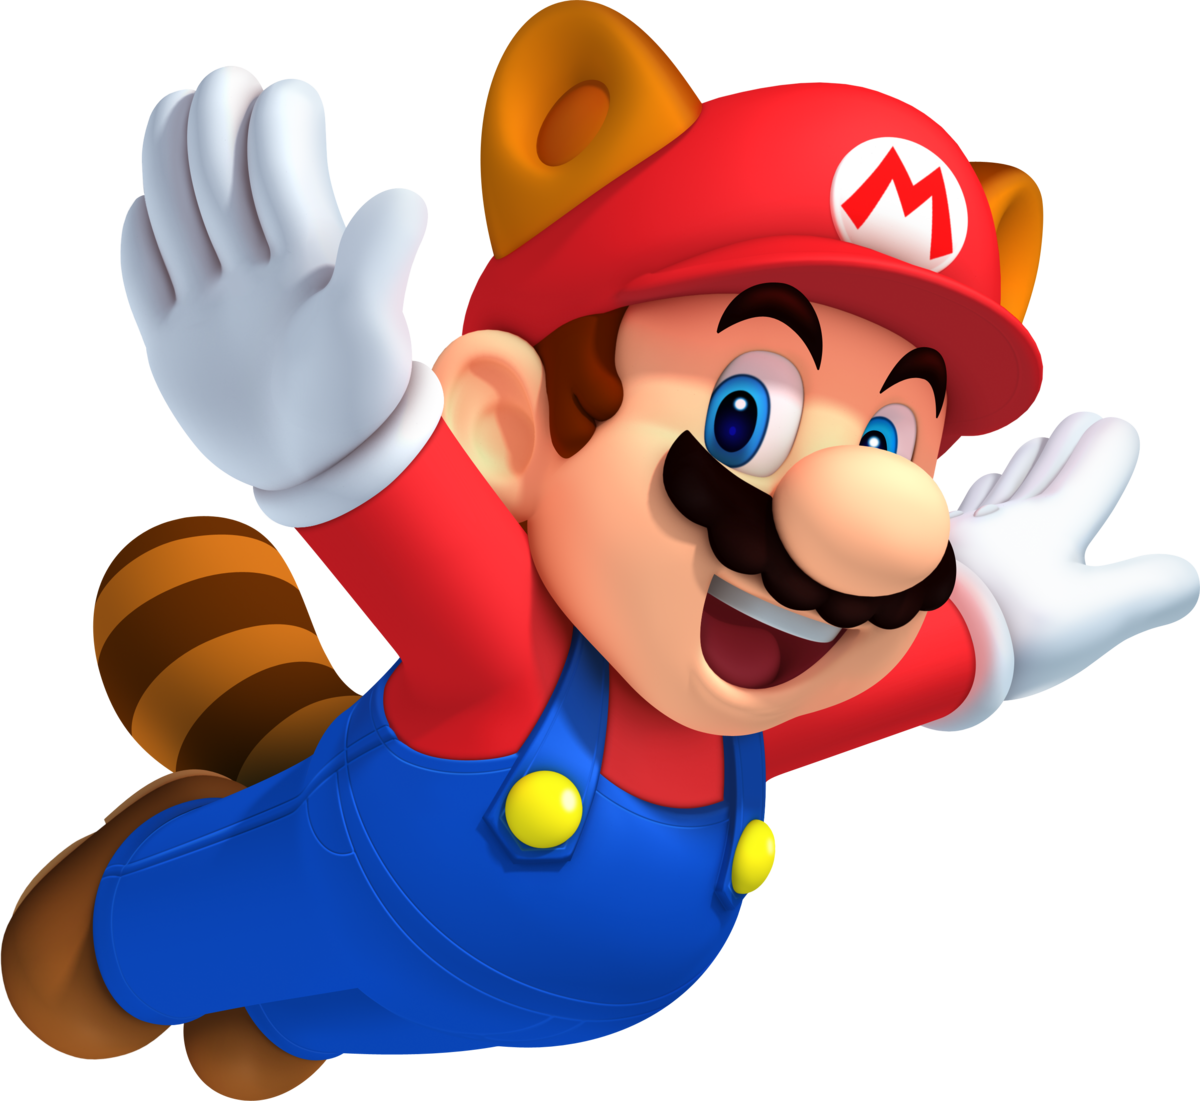 Raccoon Mario - Super Mario Wiki, the Mario encyclopedia